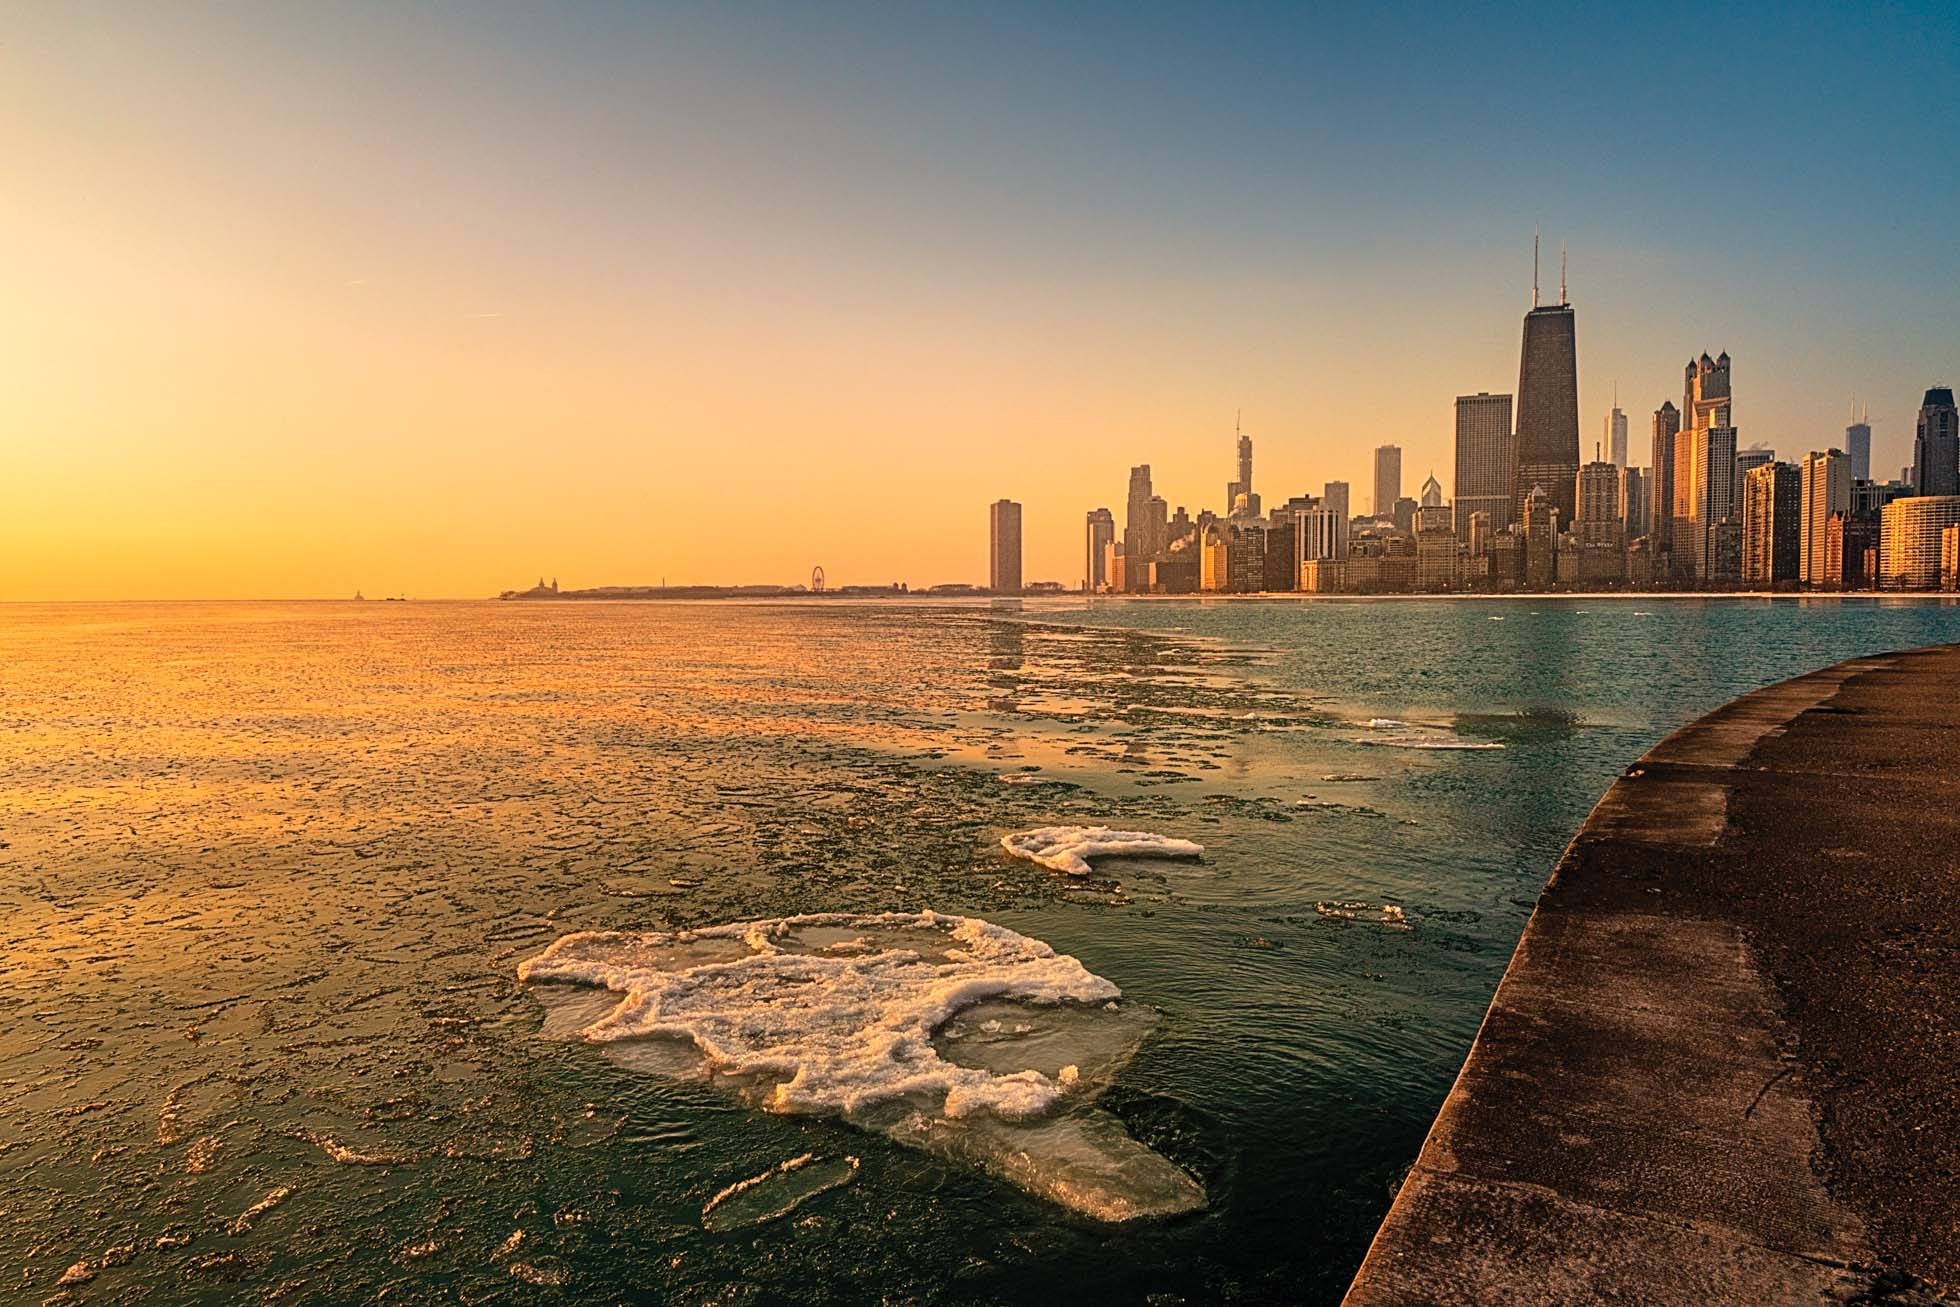 Sunrise on a chilly morning on the Chicago Lakefront